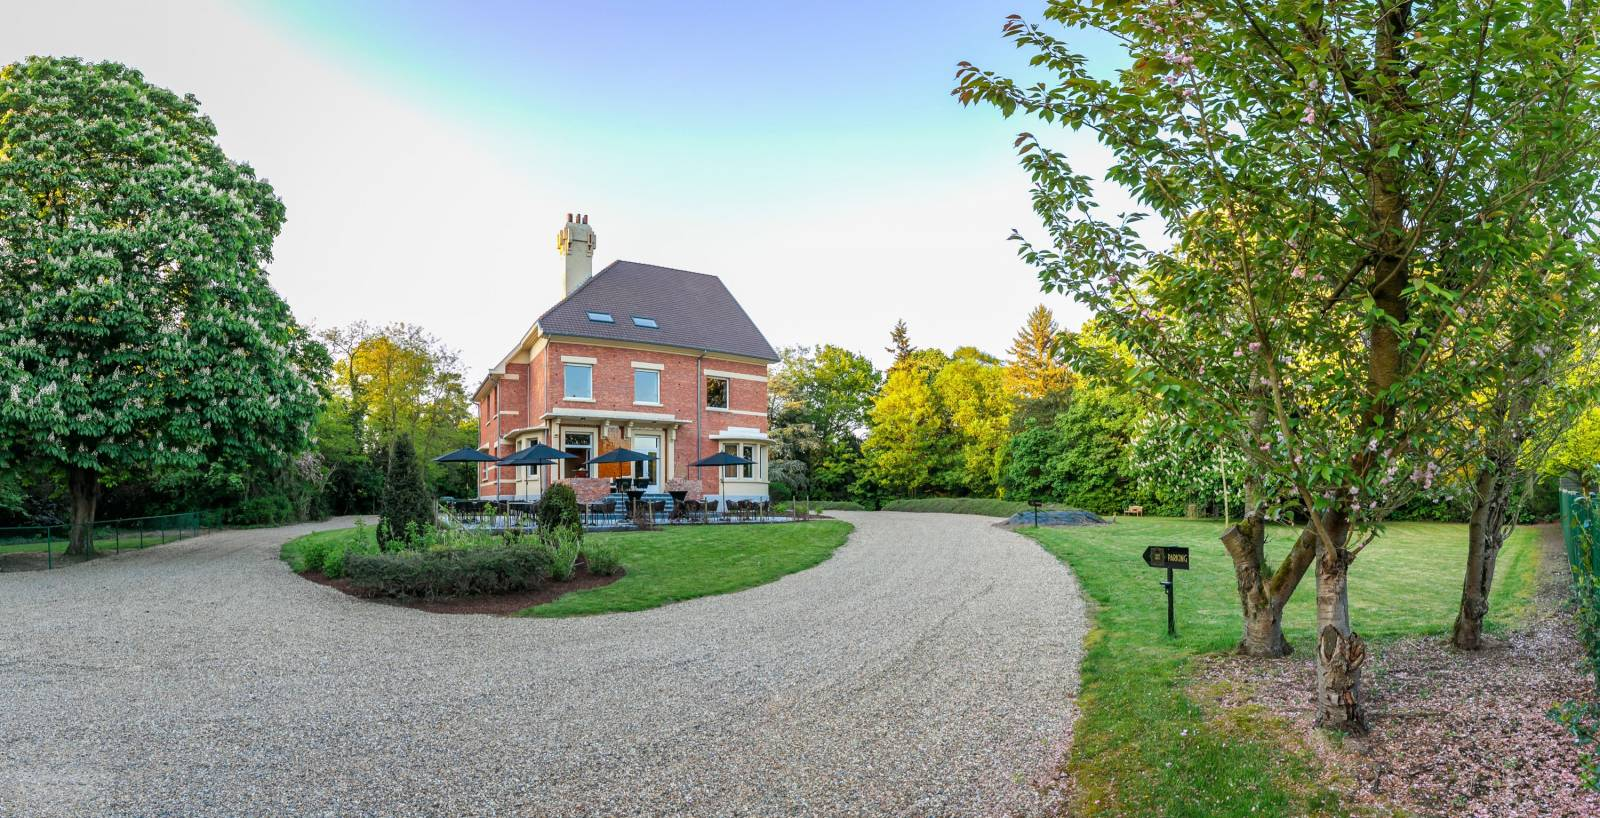 Villa Zwart Goud - Feestzaal - House of Weddings - 1